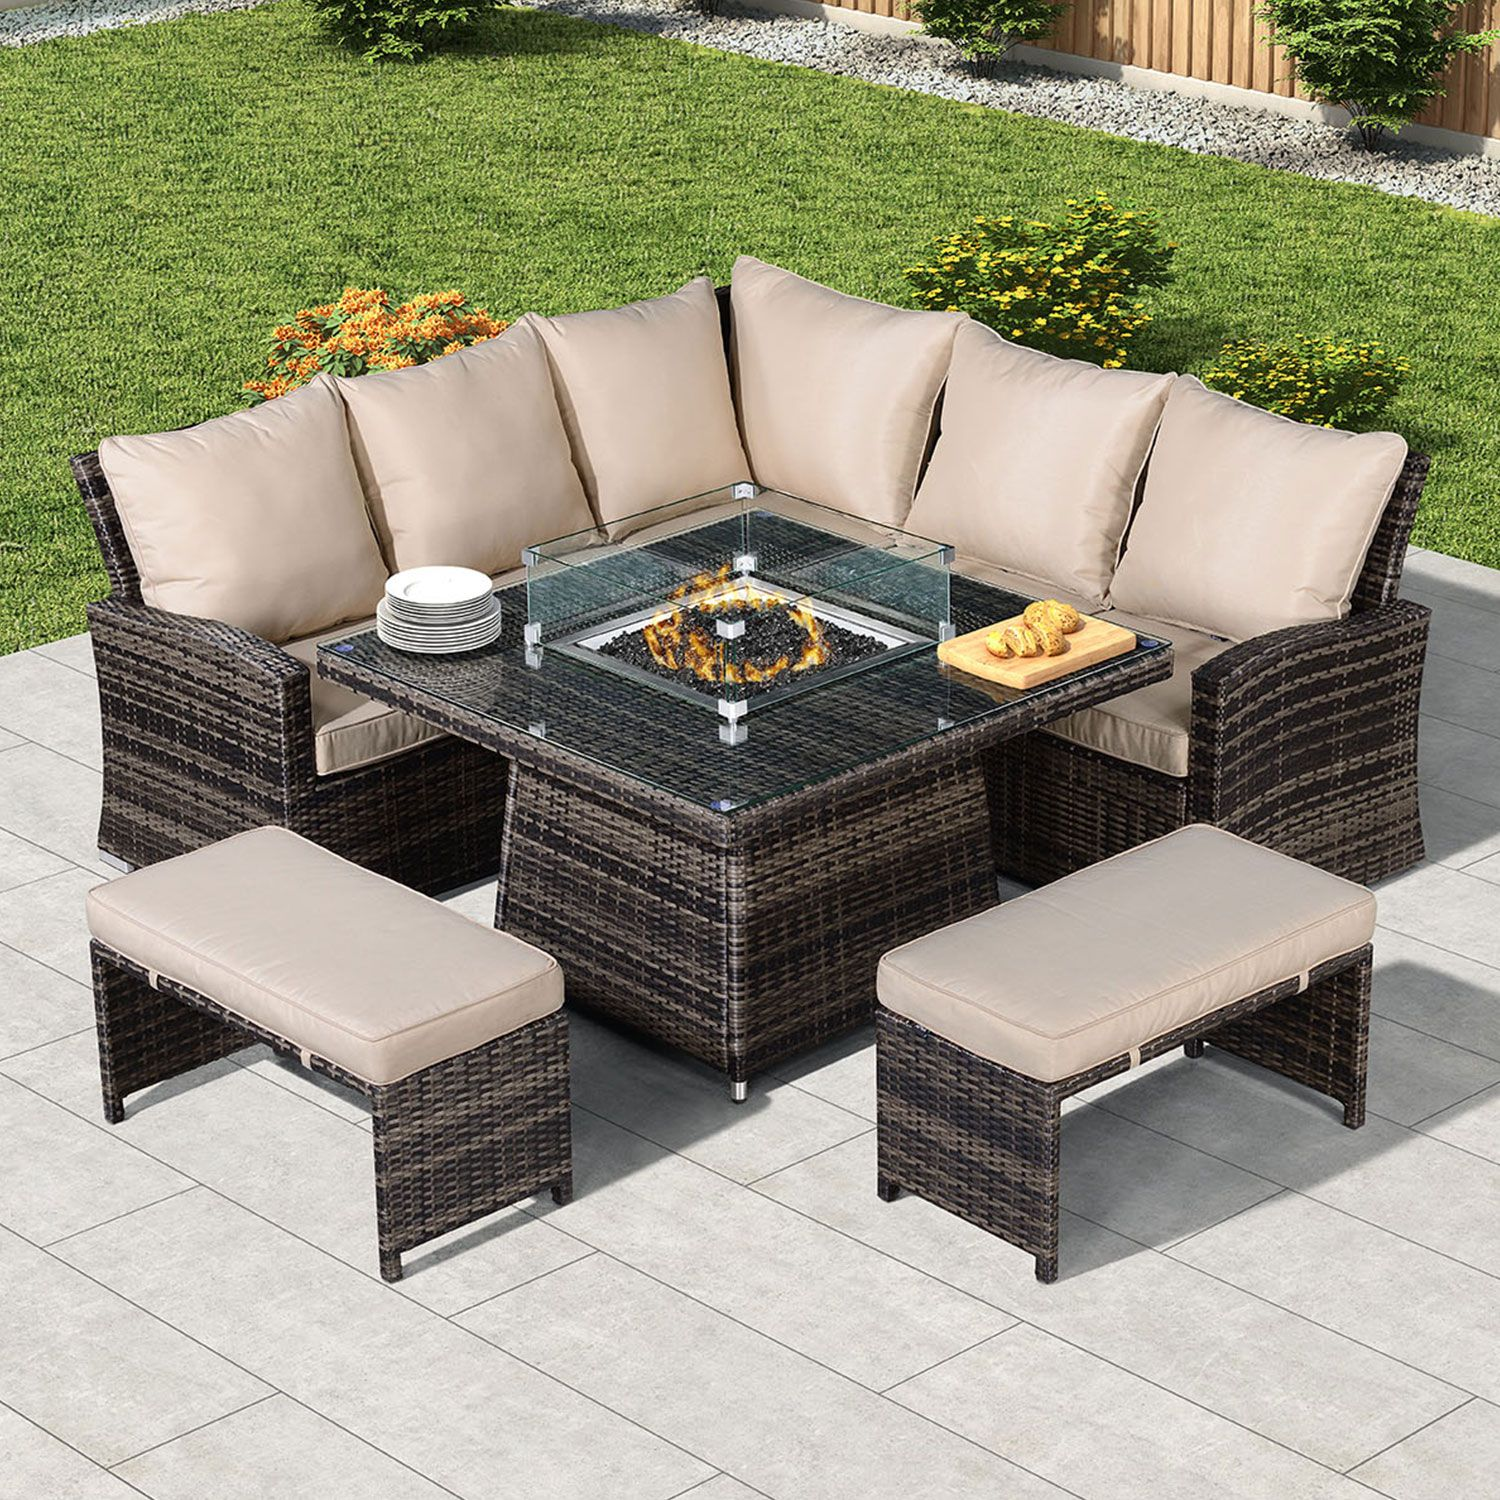 Compact Cambridge Casual Dining Corner Sofa Set With Firepit Table In 2020 Fire Pit Table Corner Sofa Set Gas Fire Pit Table